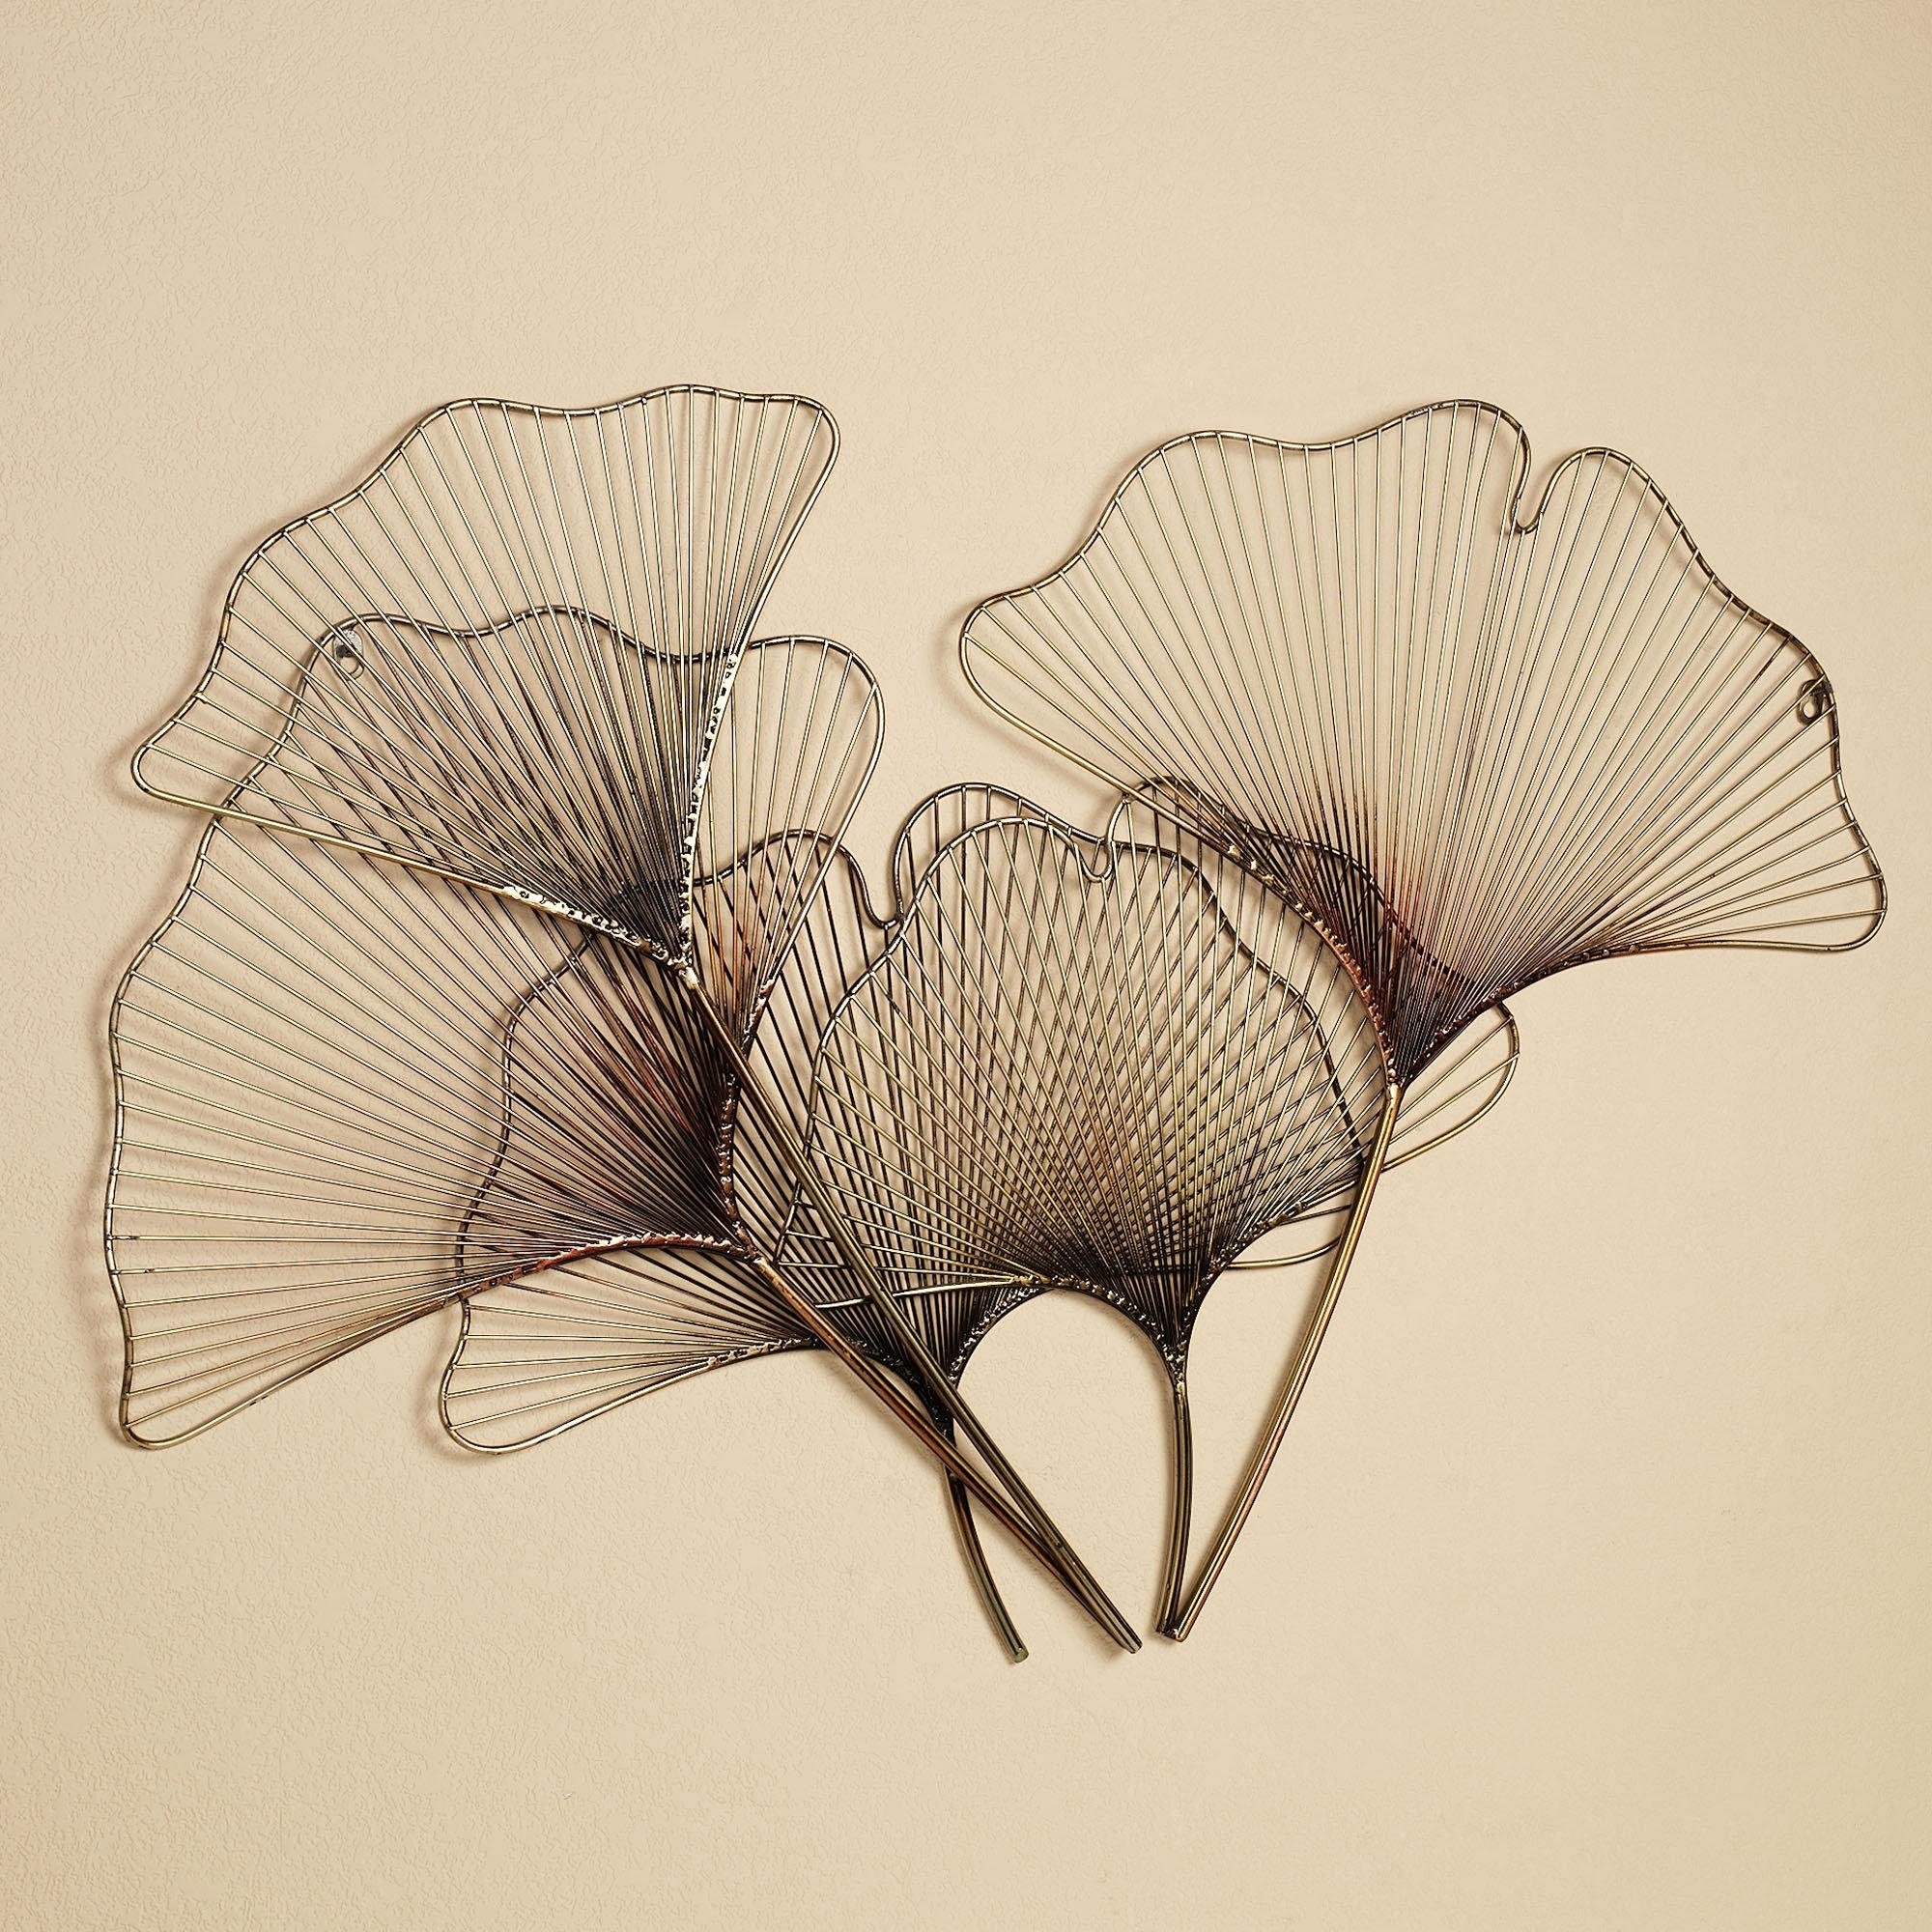 Amazing Decoratio Site Image Metal Wall Art Decor And Sculptures Regarding Wire Wall Art Decors (Image 5 of 20)